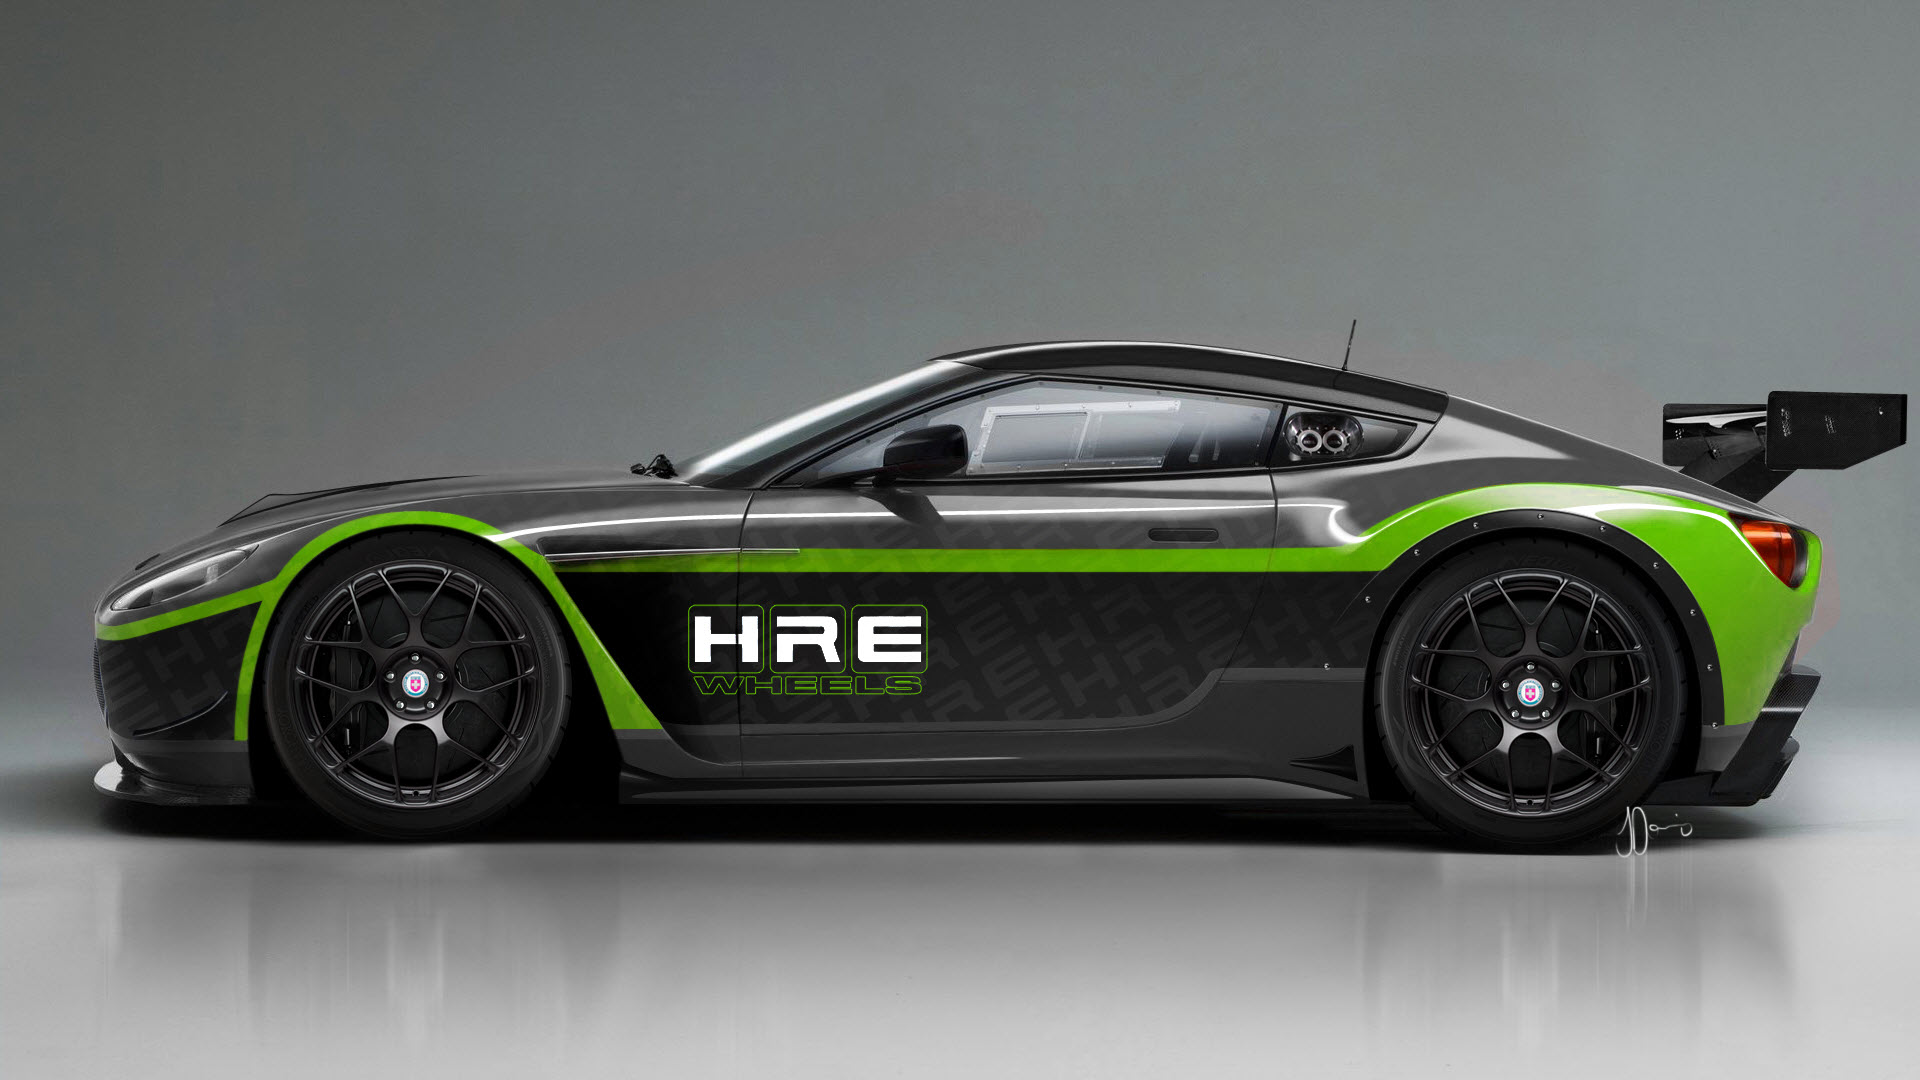 Aston Martin Cars 26 Widescreen Wallpaper